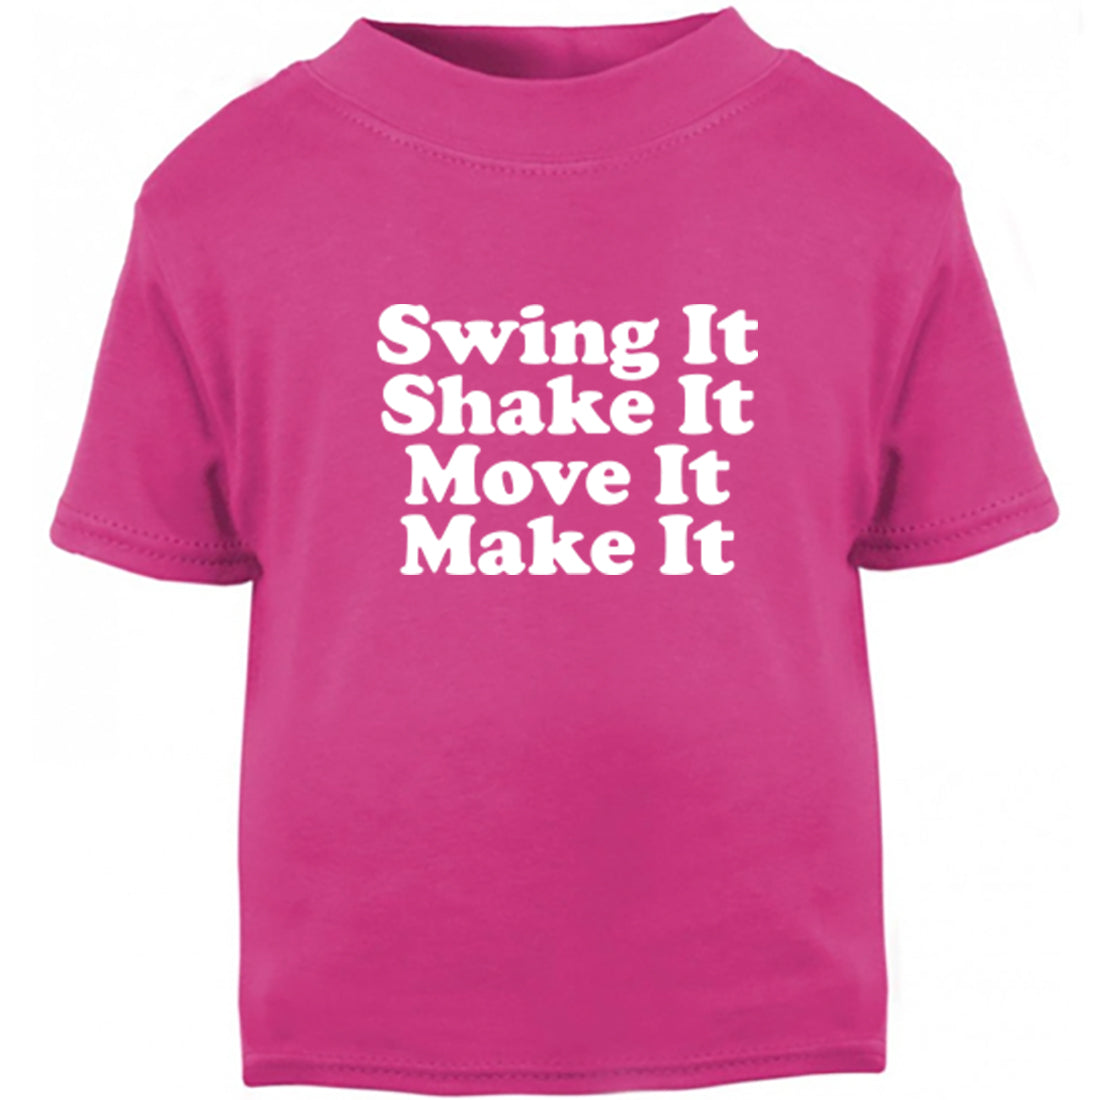 Swing It Shake It Move It Make It-Spice Girls Childrens Ages 3/4-12/14 Unisex Fit T-Shirt K2430